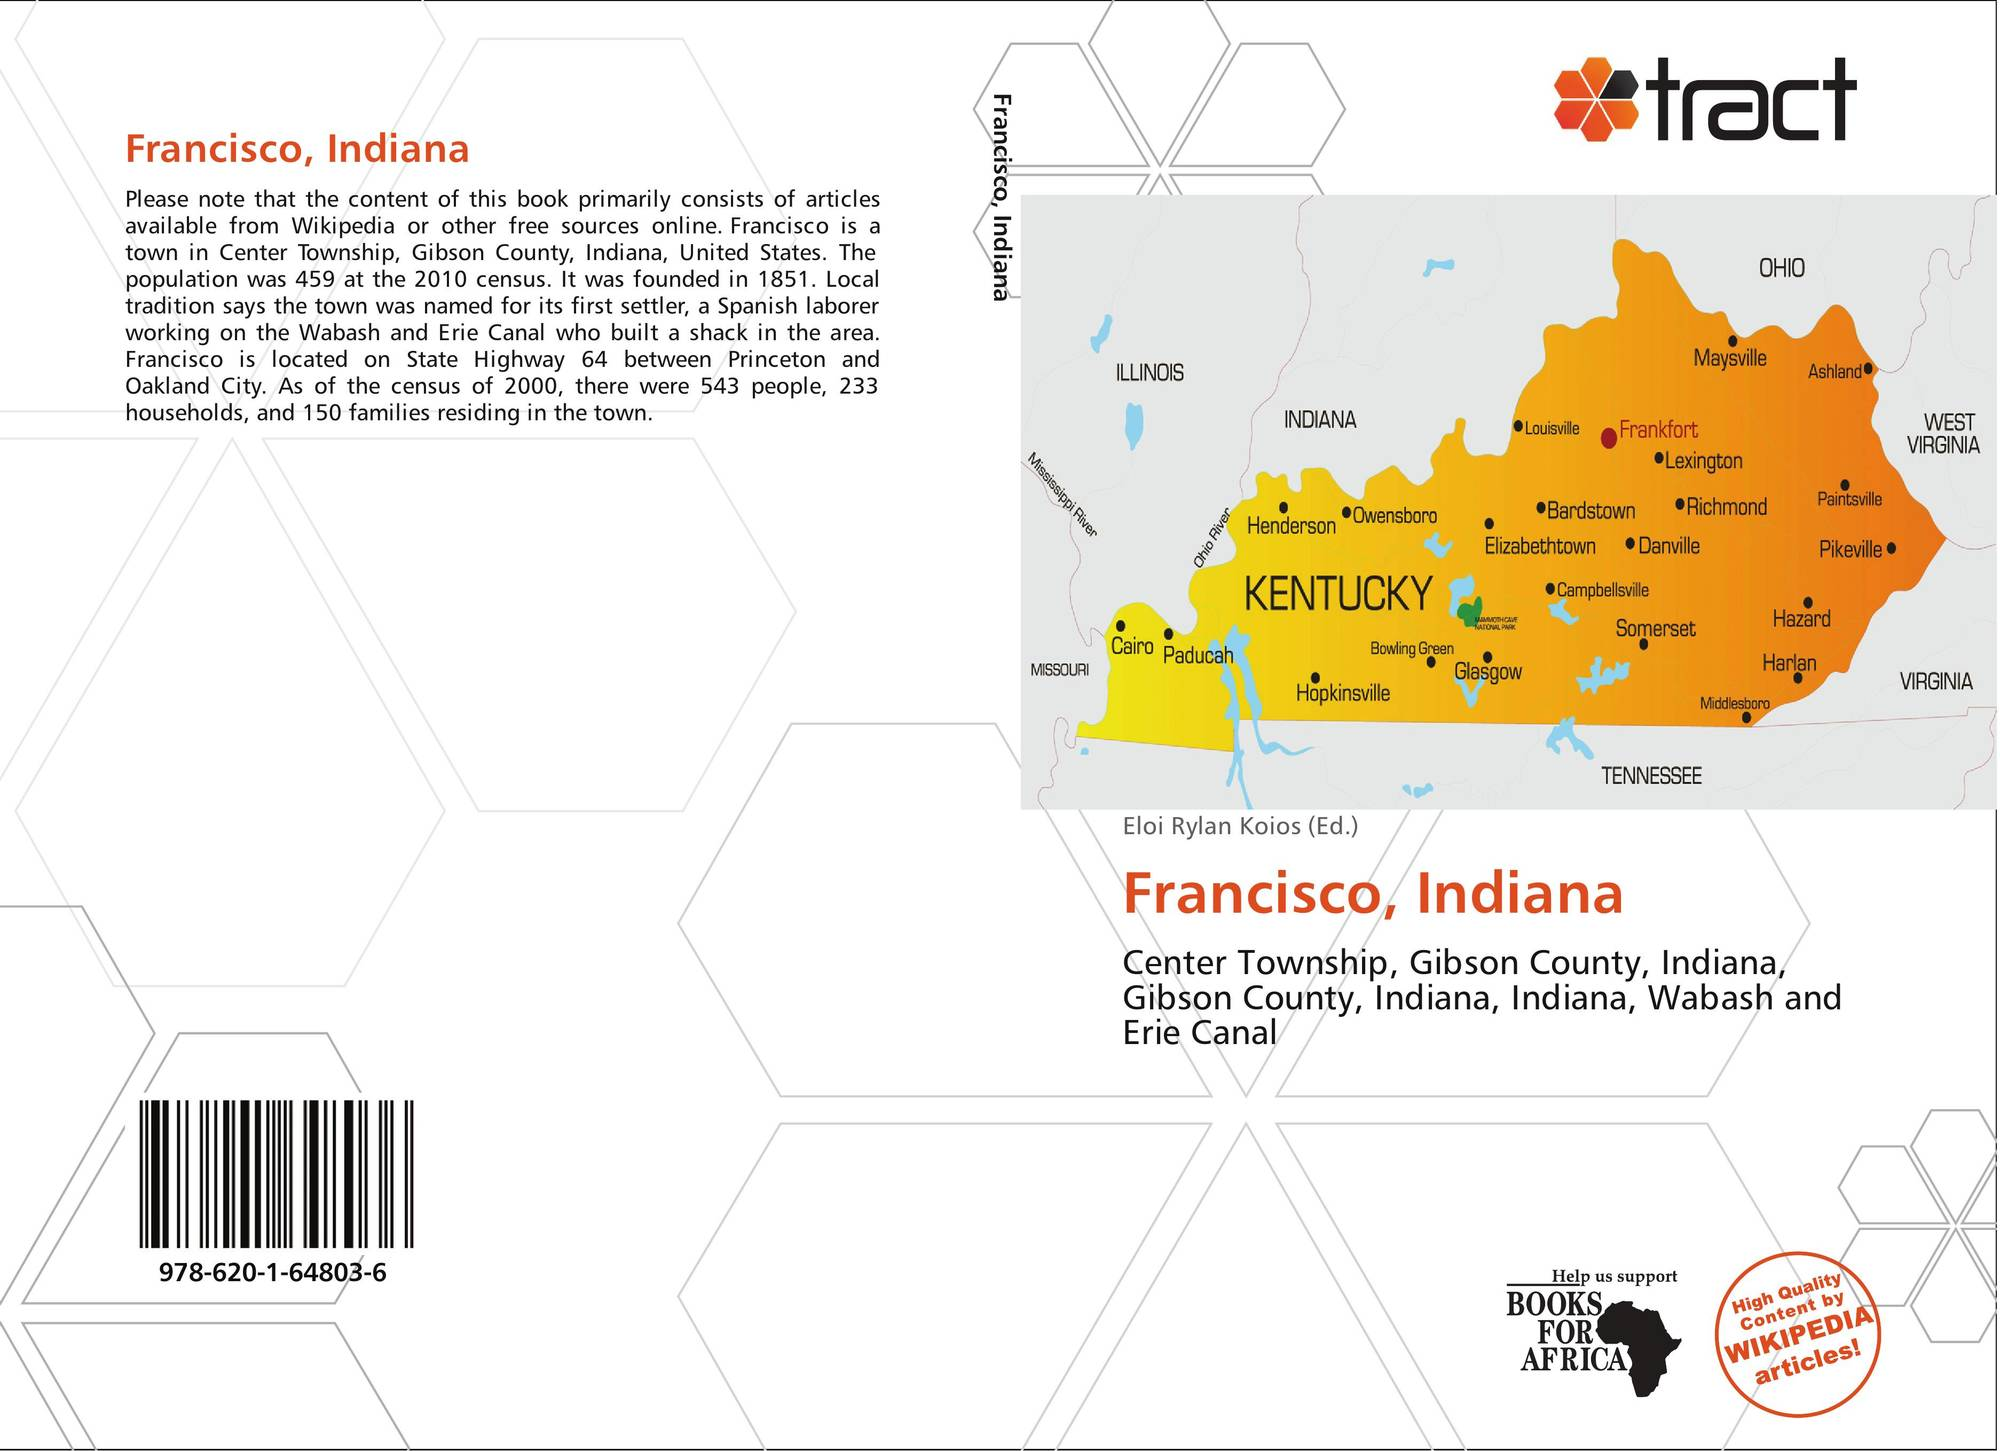 Indiana gibson county francisco - Bookcover Of Francisco Indiana